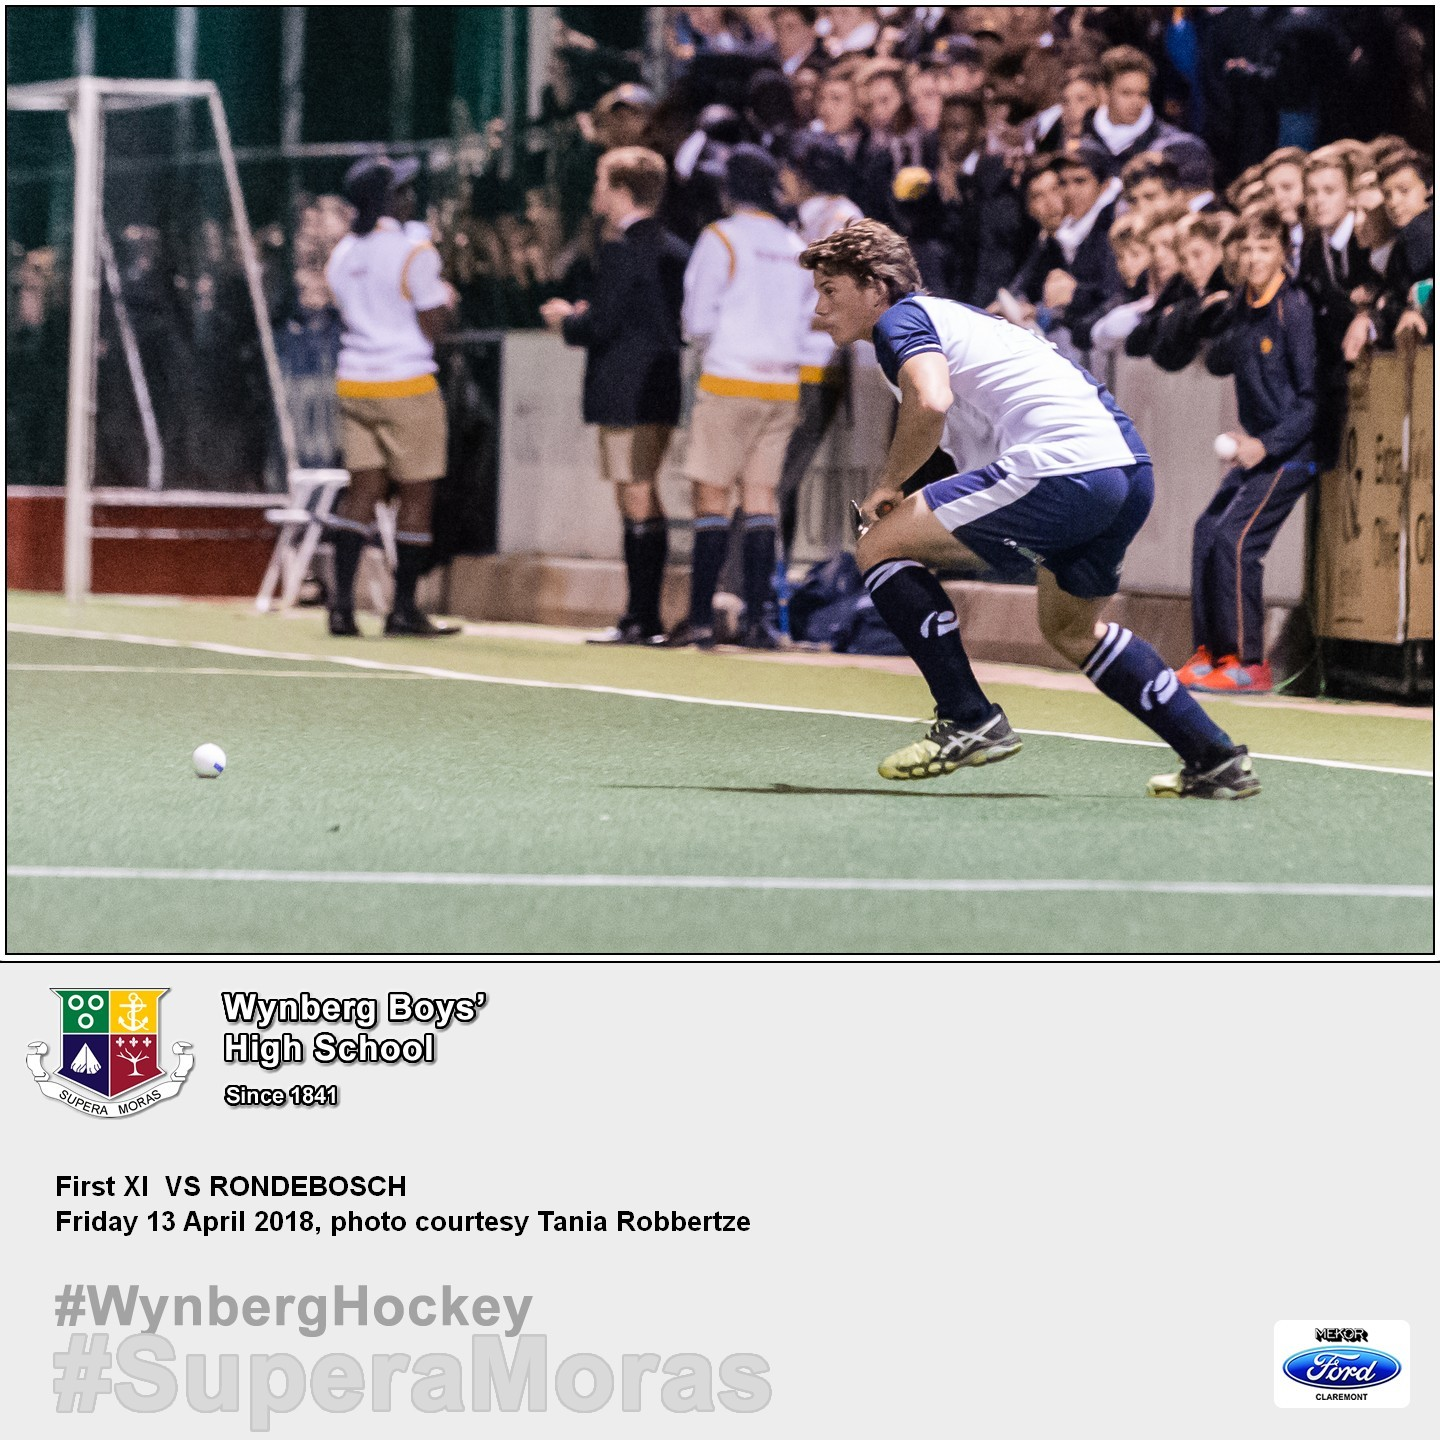 1st XI vs Rondebosch, Friday 13 April 2018